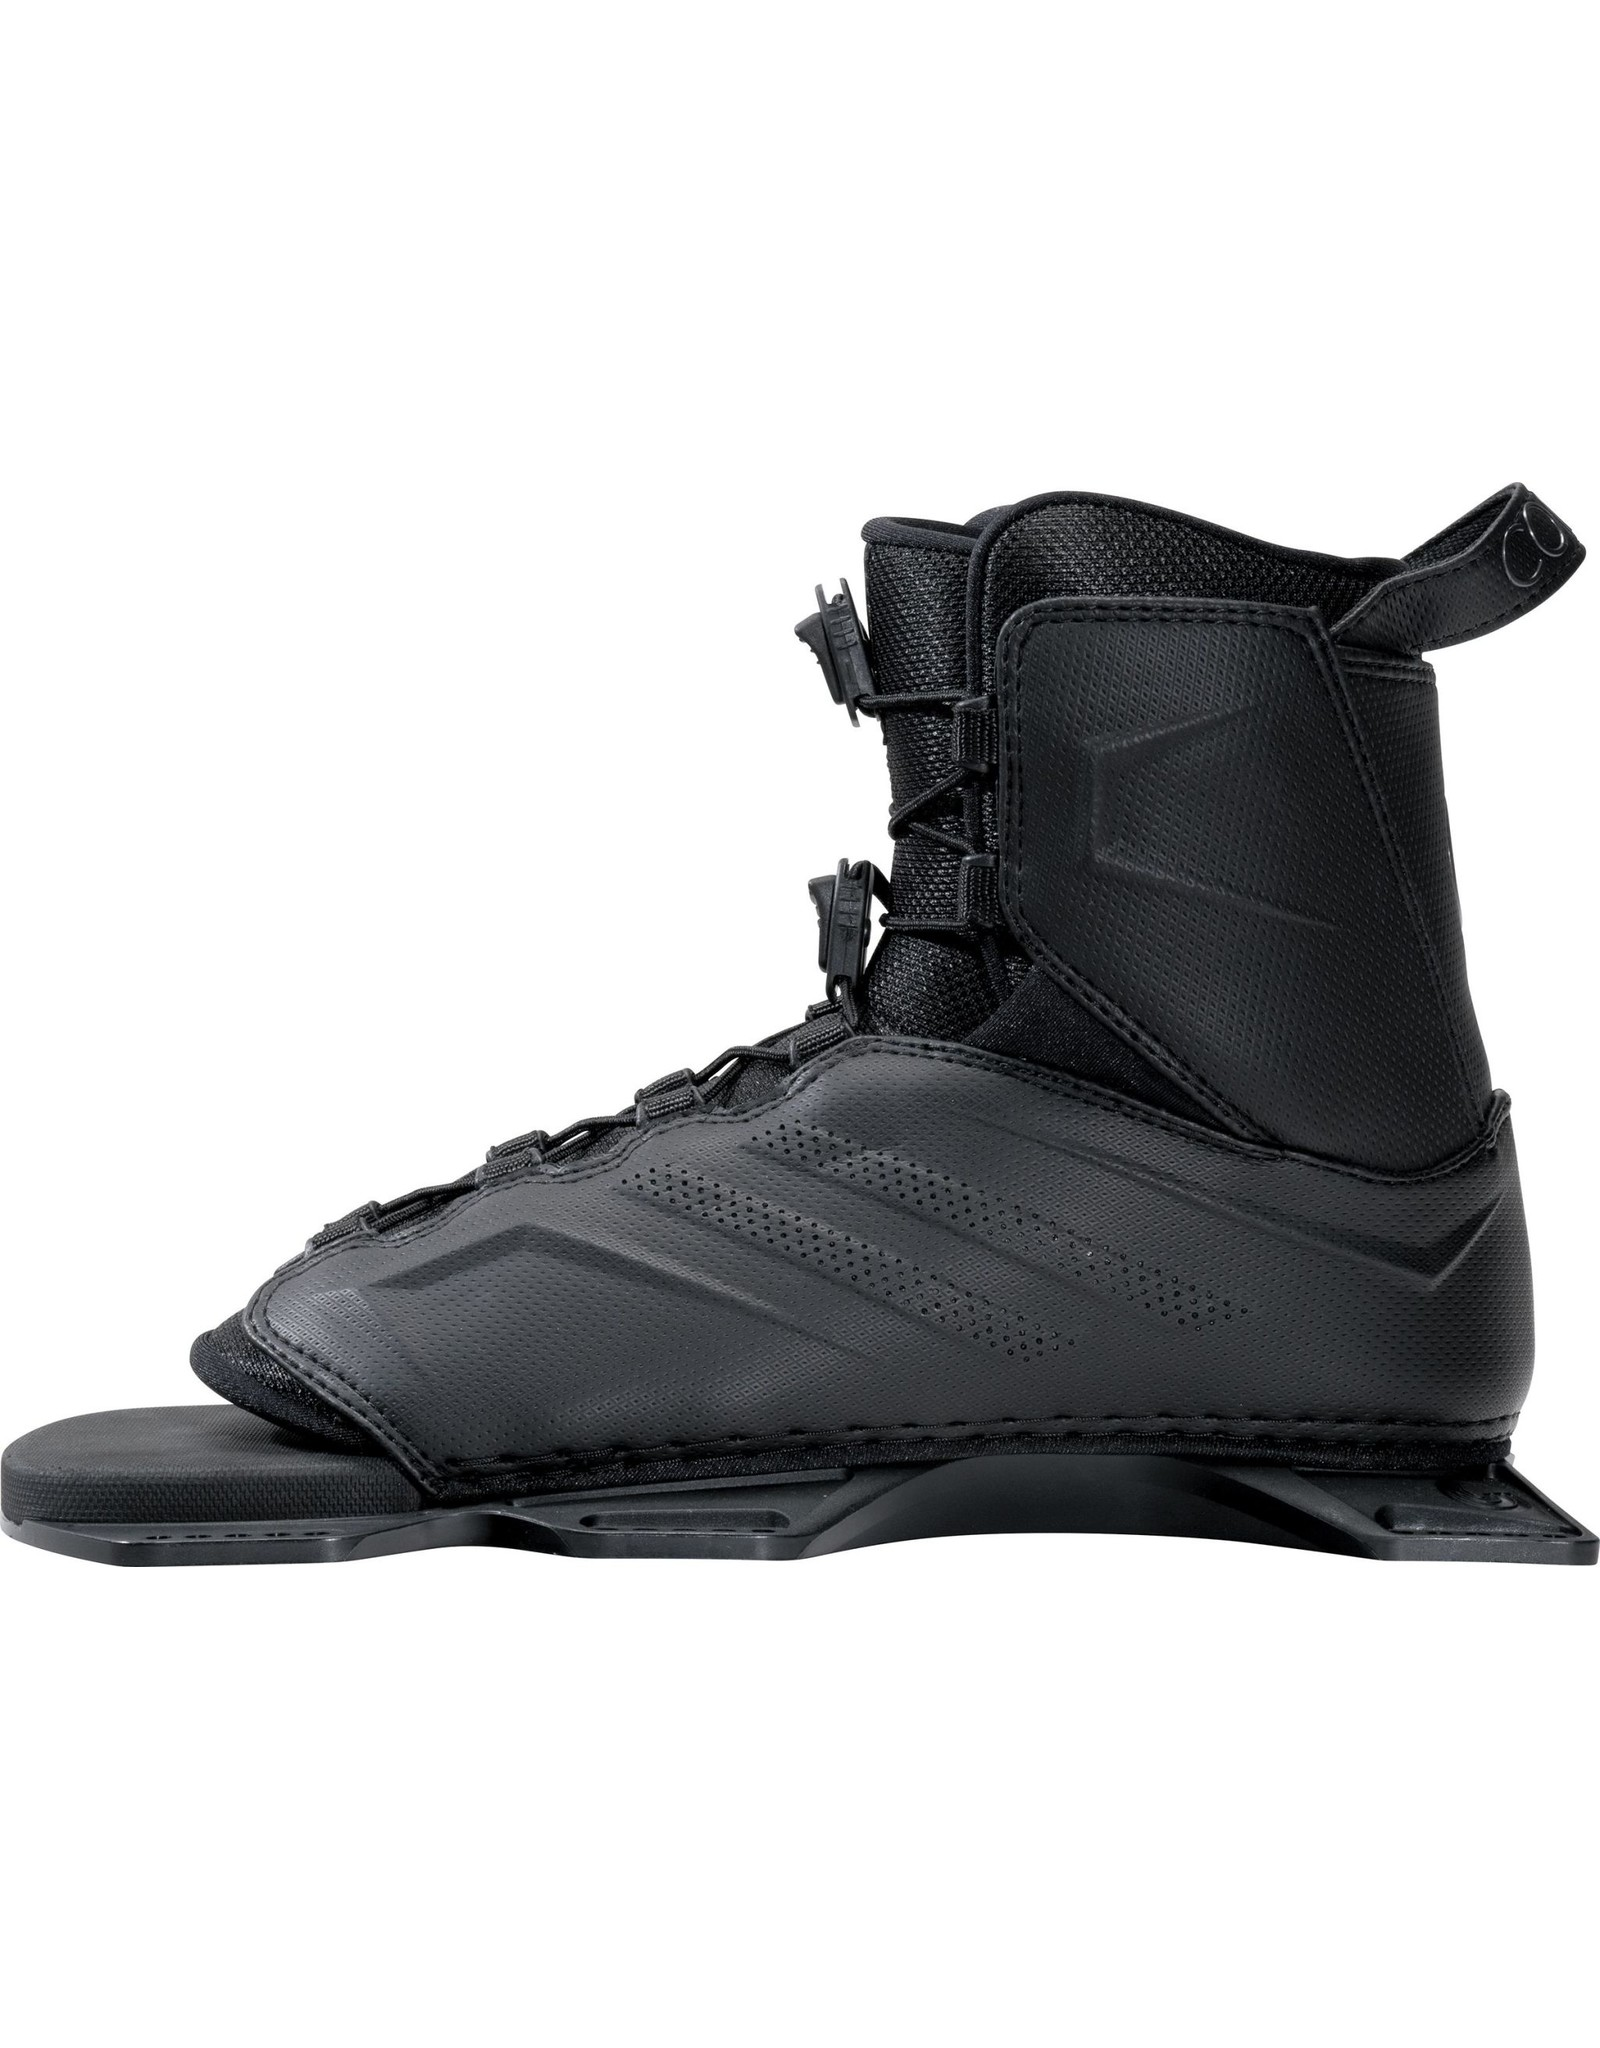 Connelly 2021 Tempest Boot